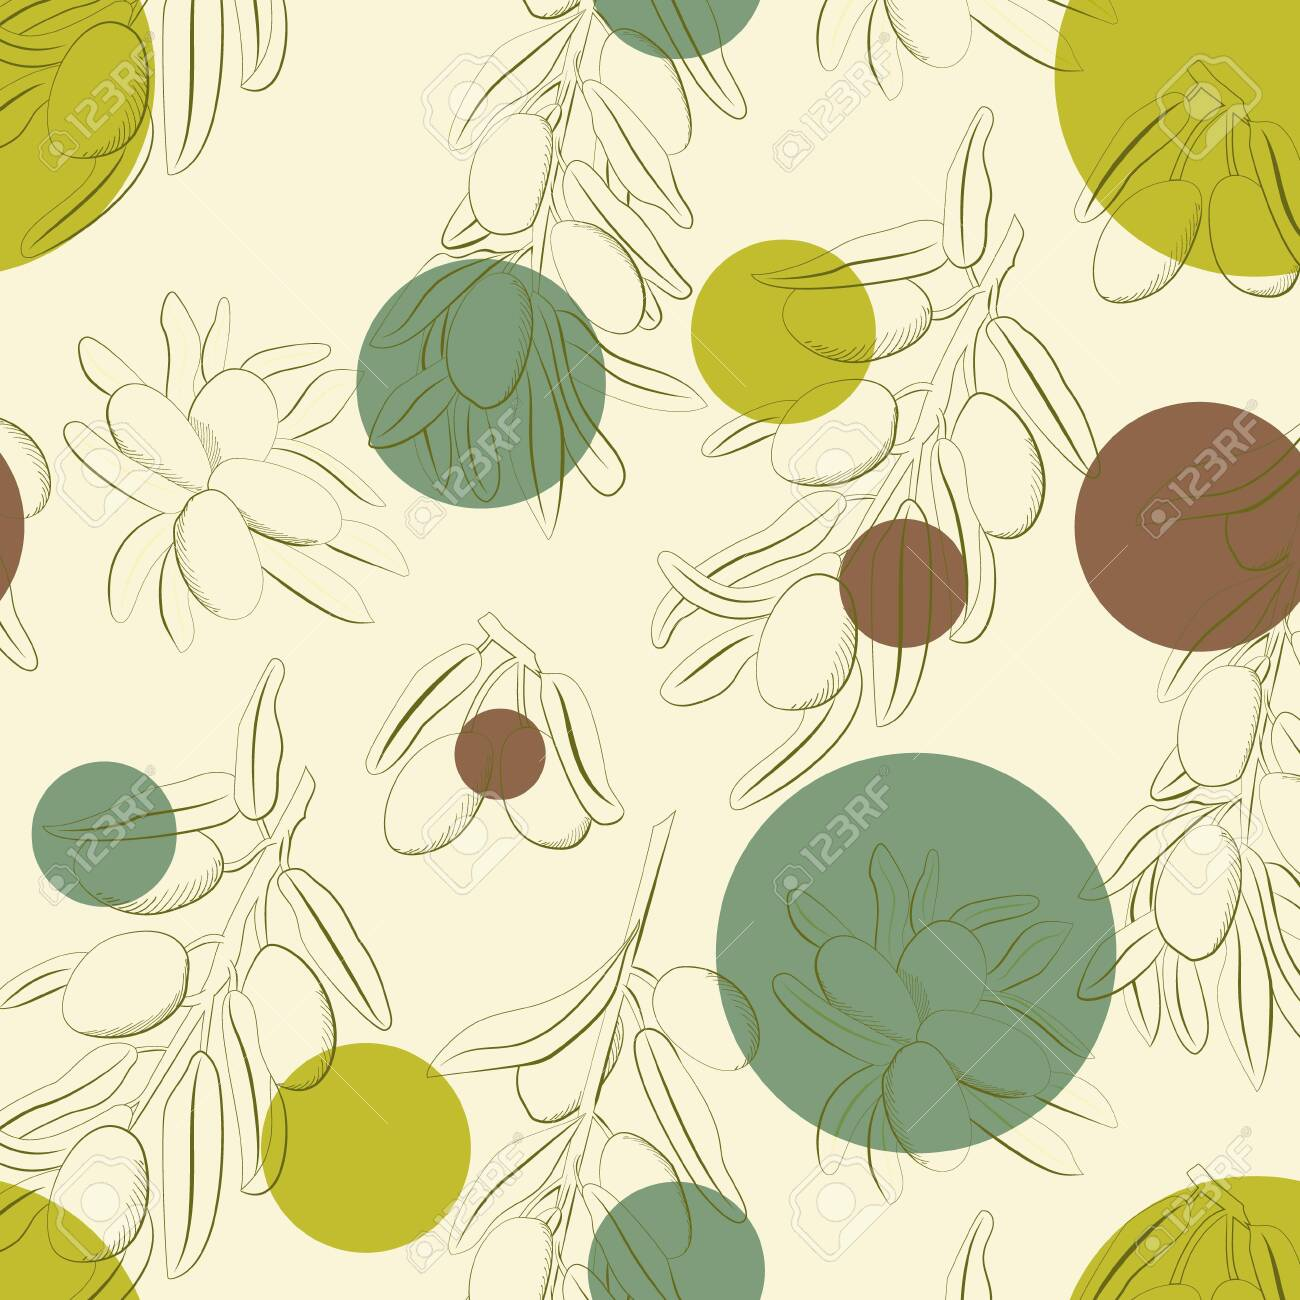 olives and olive branch background hand drawn illustration. Vector doodle style. - 143733040